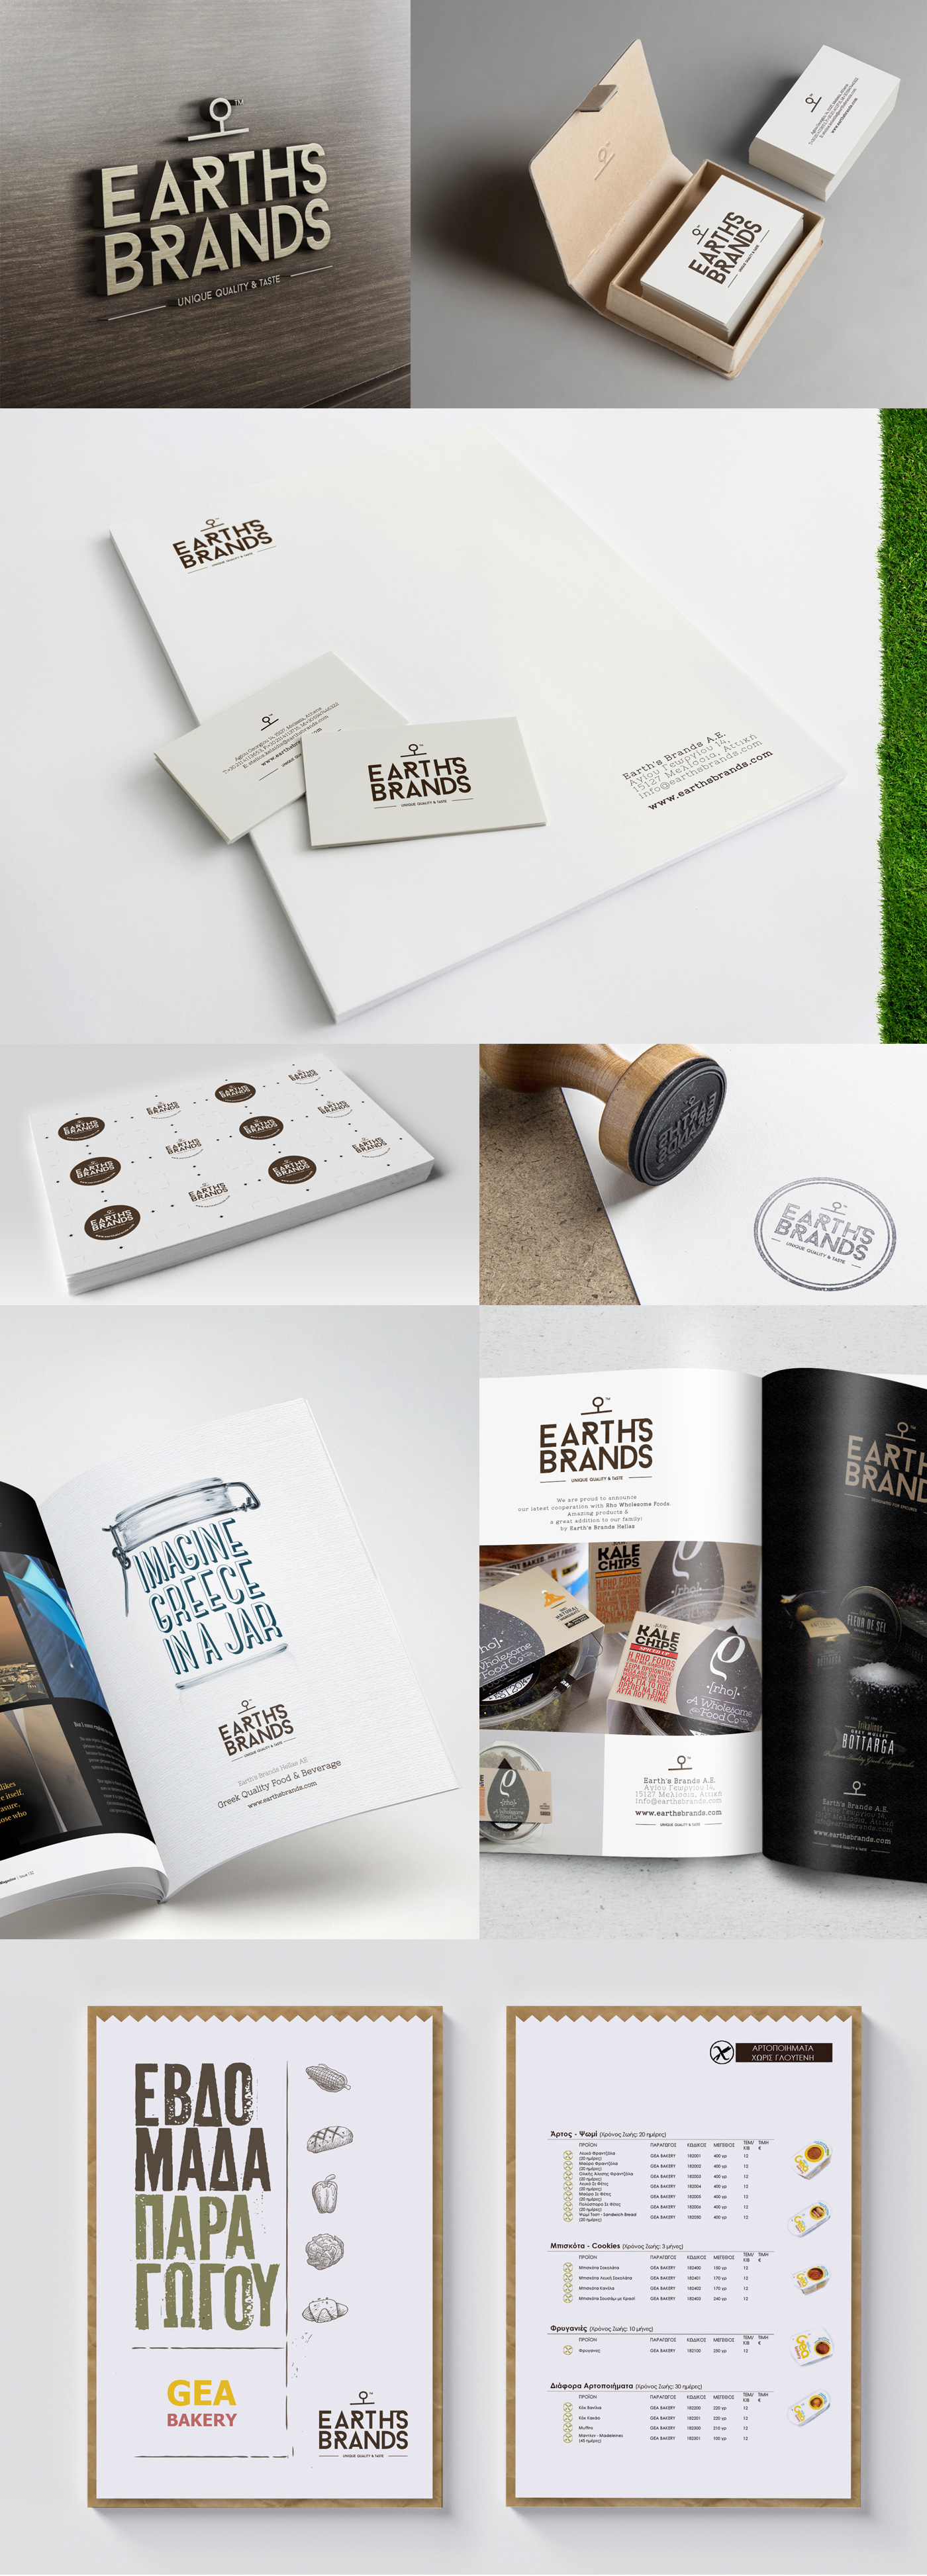 united states Greece distribution services Import & Export Logo Design visual identity promotional material Product Catalogue print ads gourmet greek products